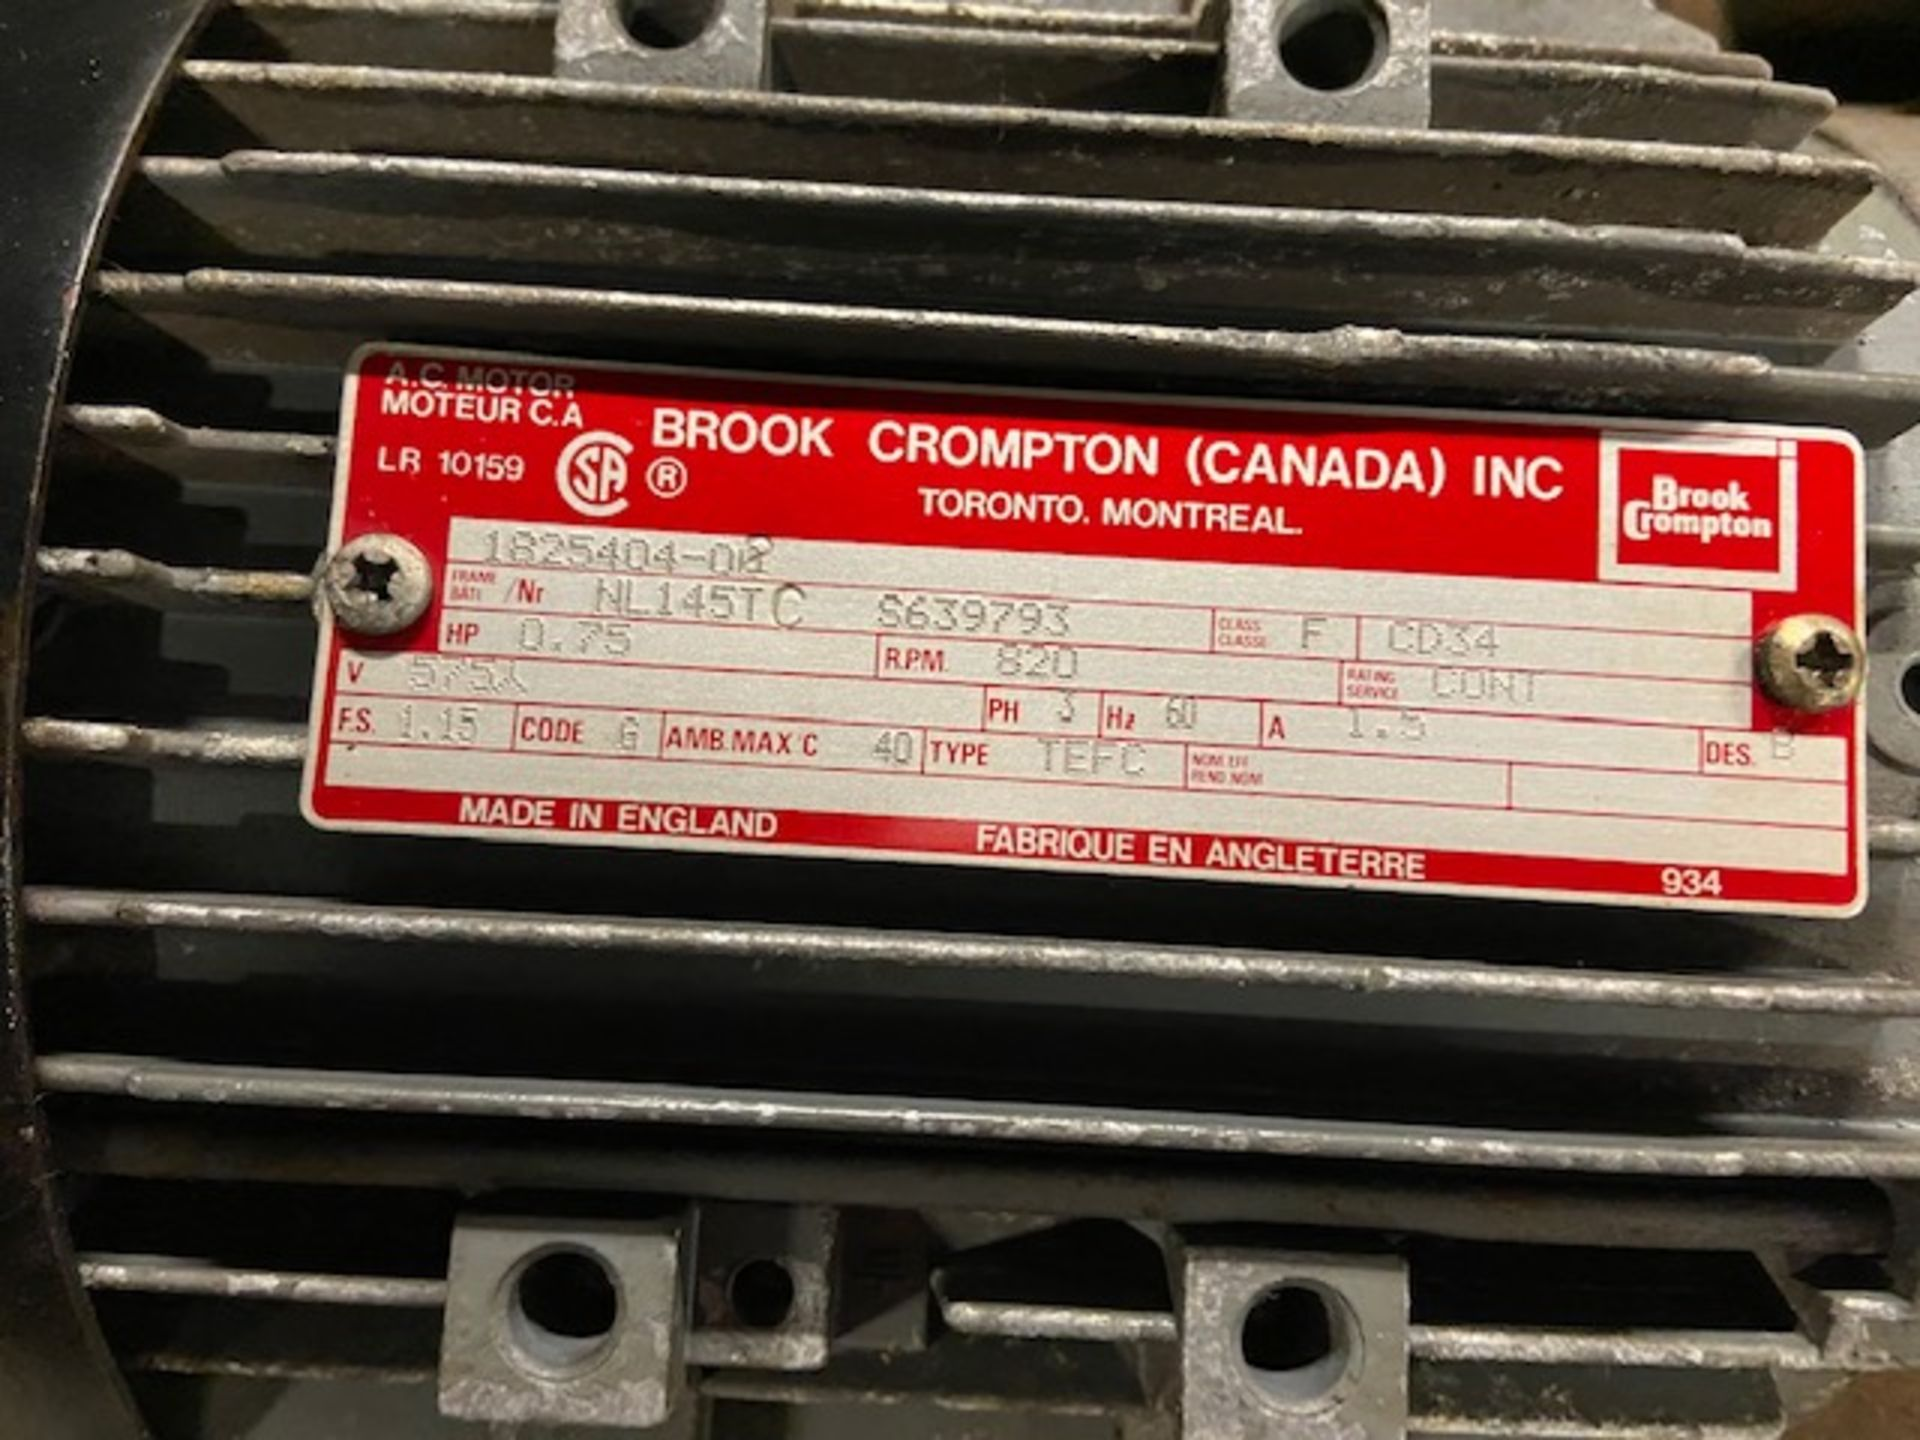 Lot of 3 (3 units) Brook Crompton Motors with Gear Boxes - Image 2 of 4